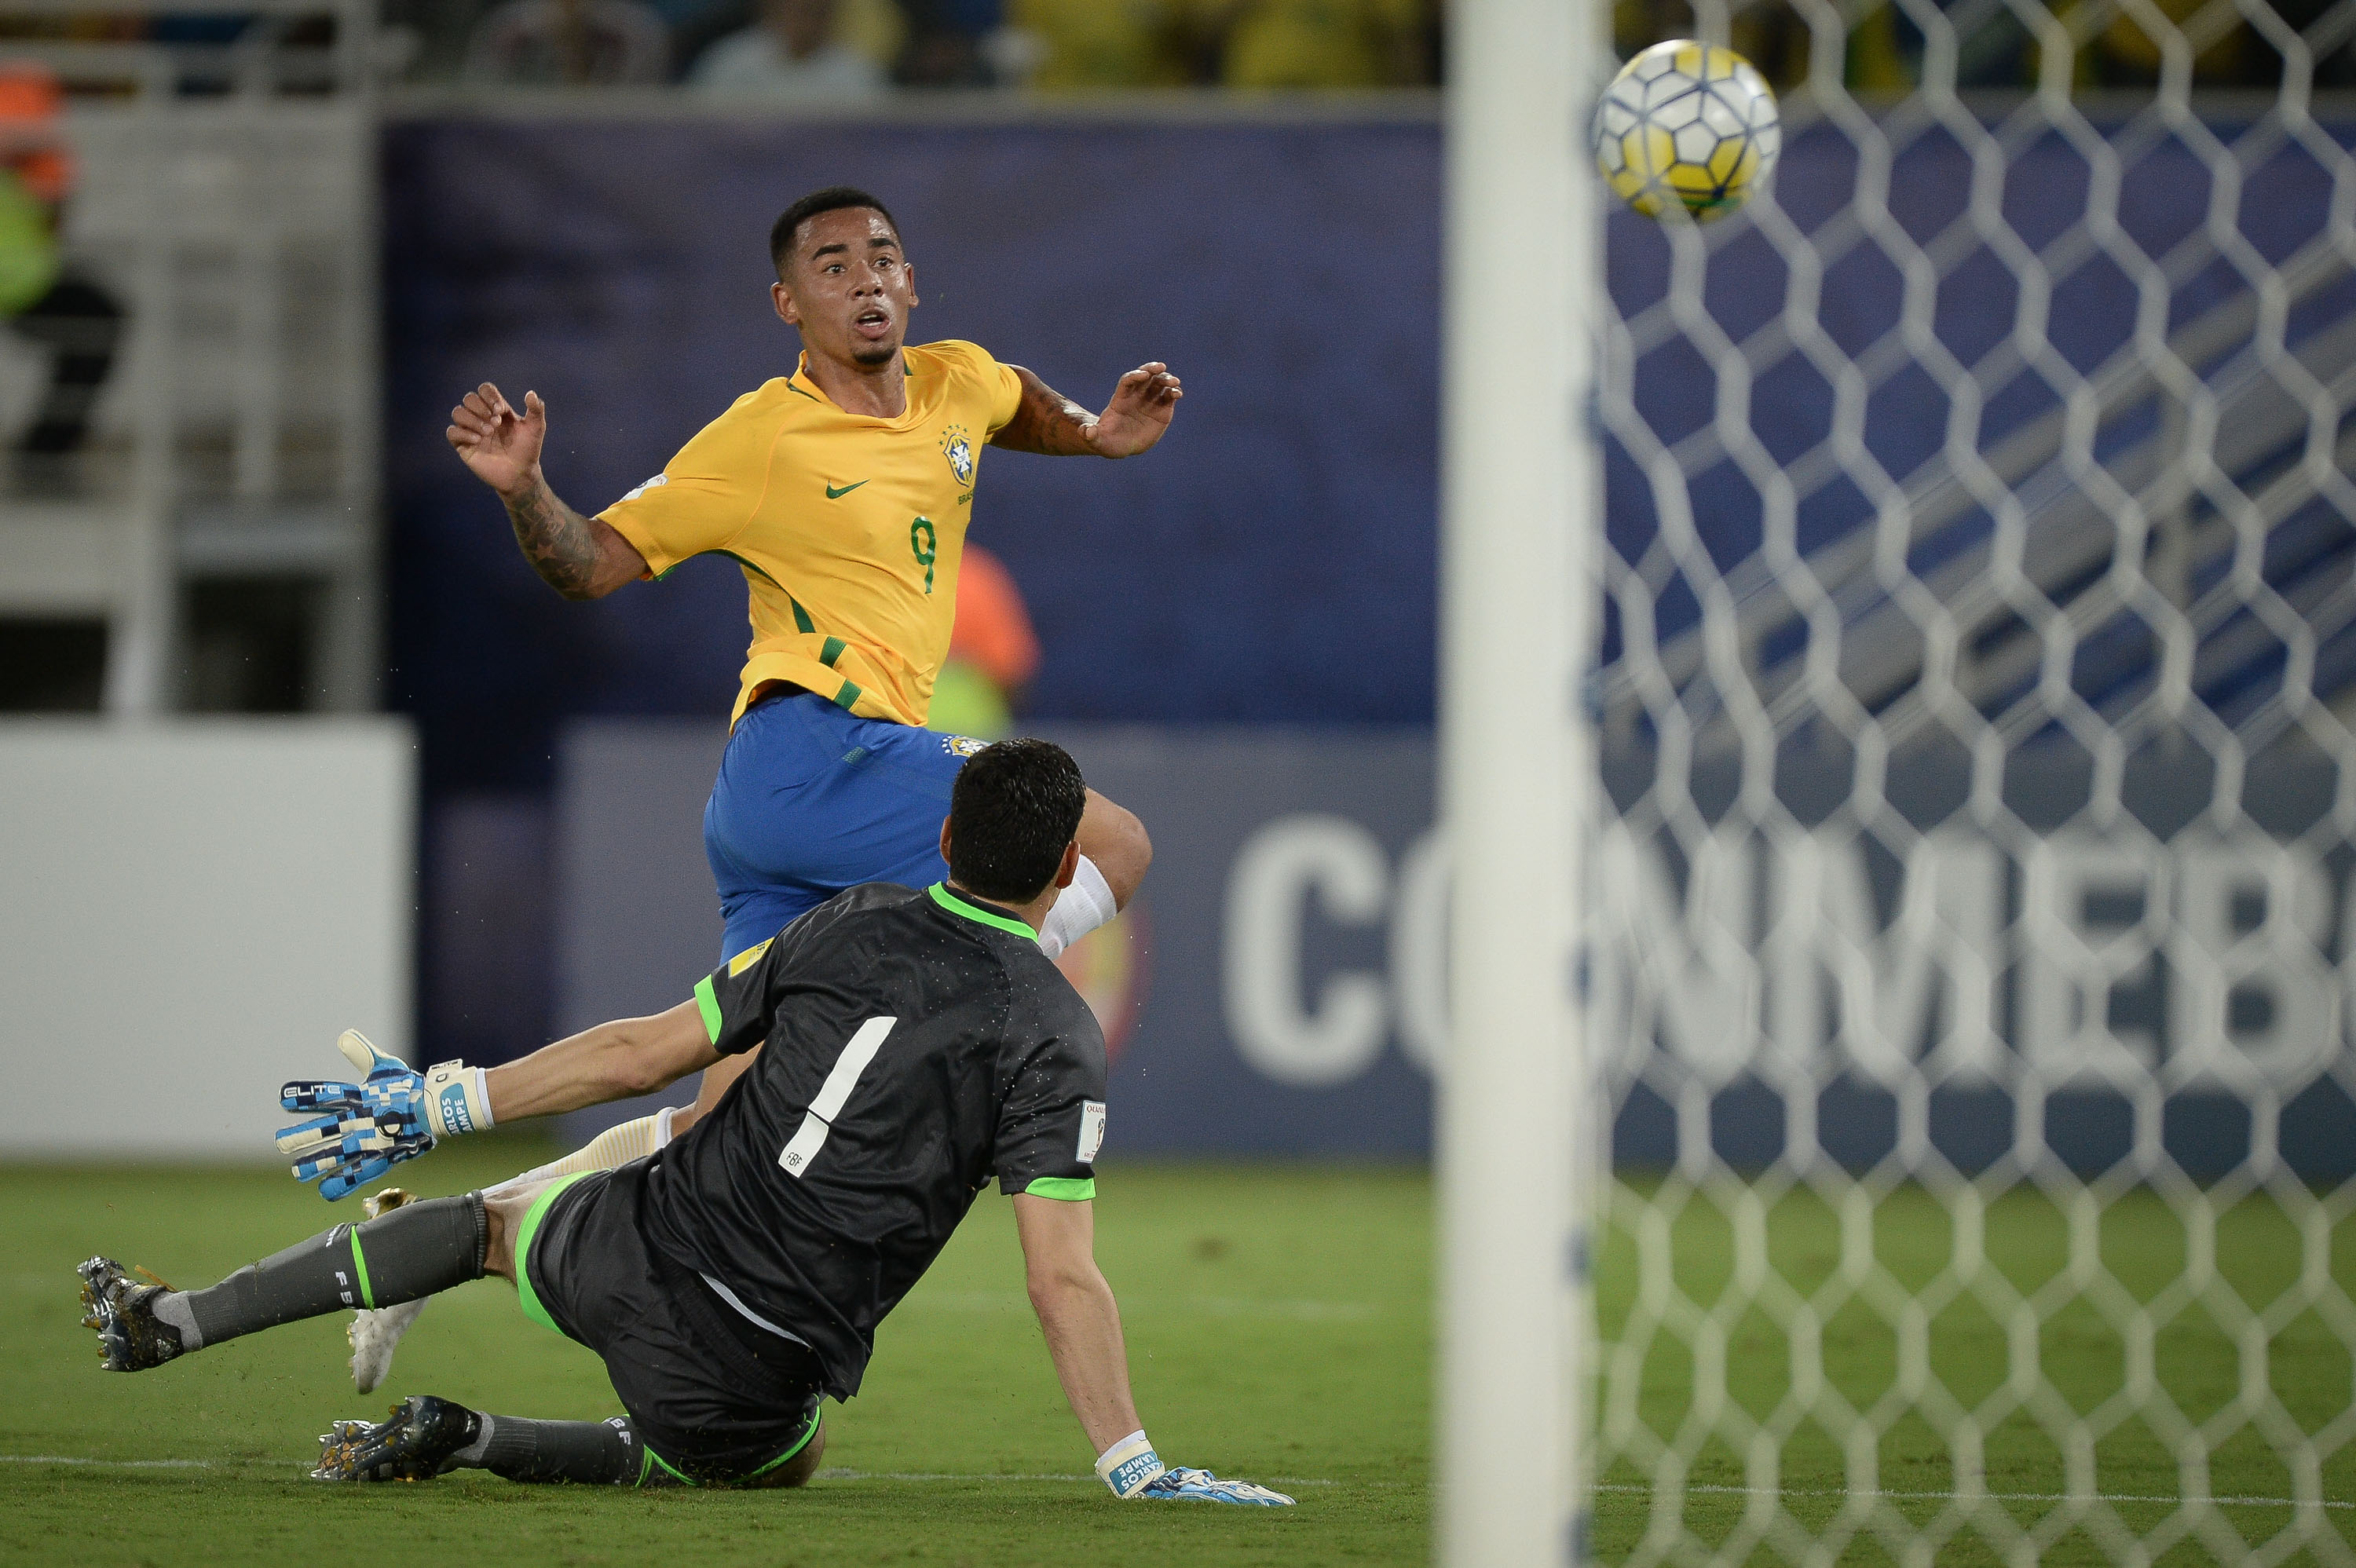 lessons from com in three matches for his country the palmeiras starlet has hit three goals leaving him tied neymar as the top scorer of